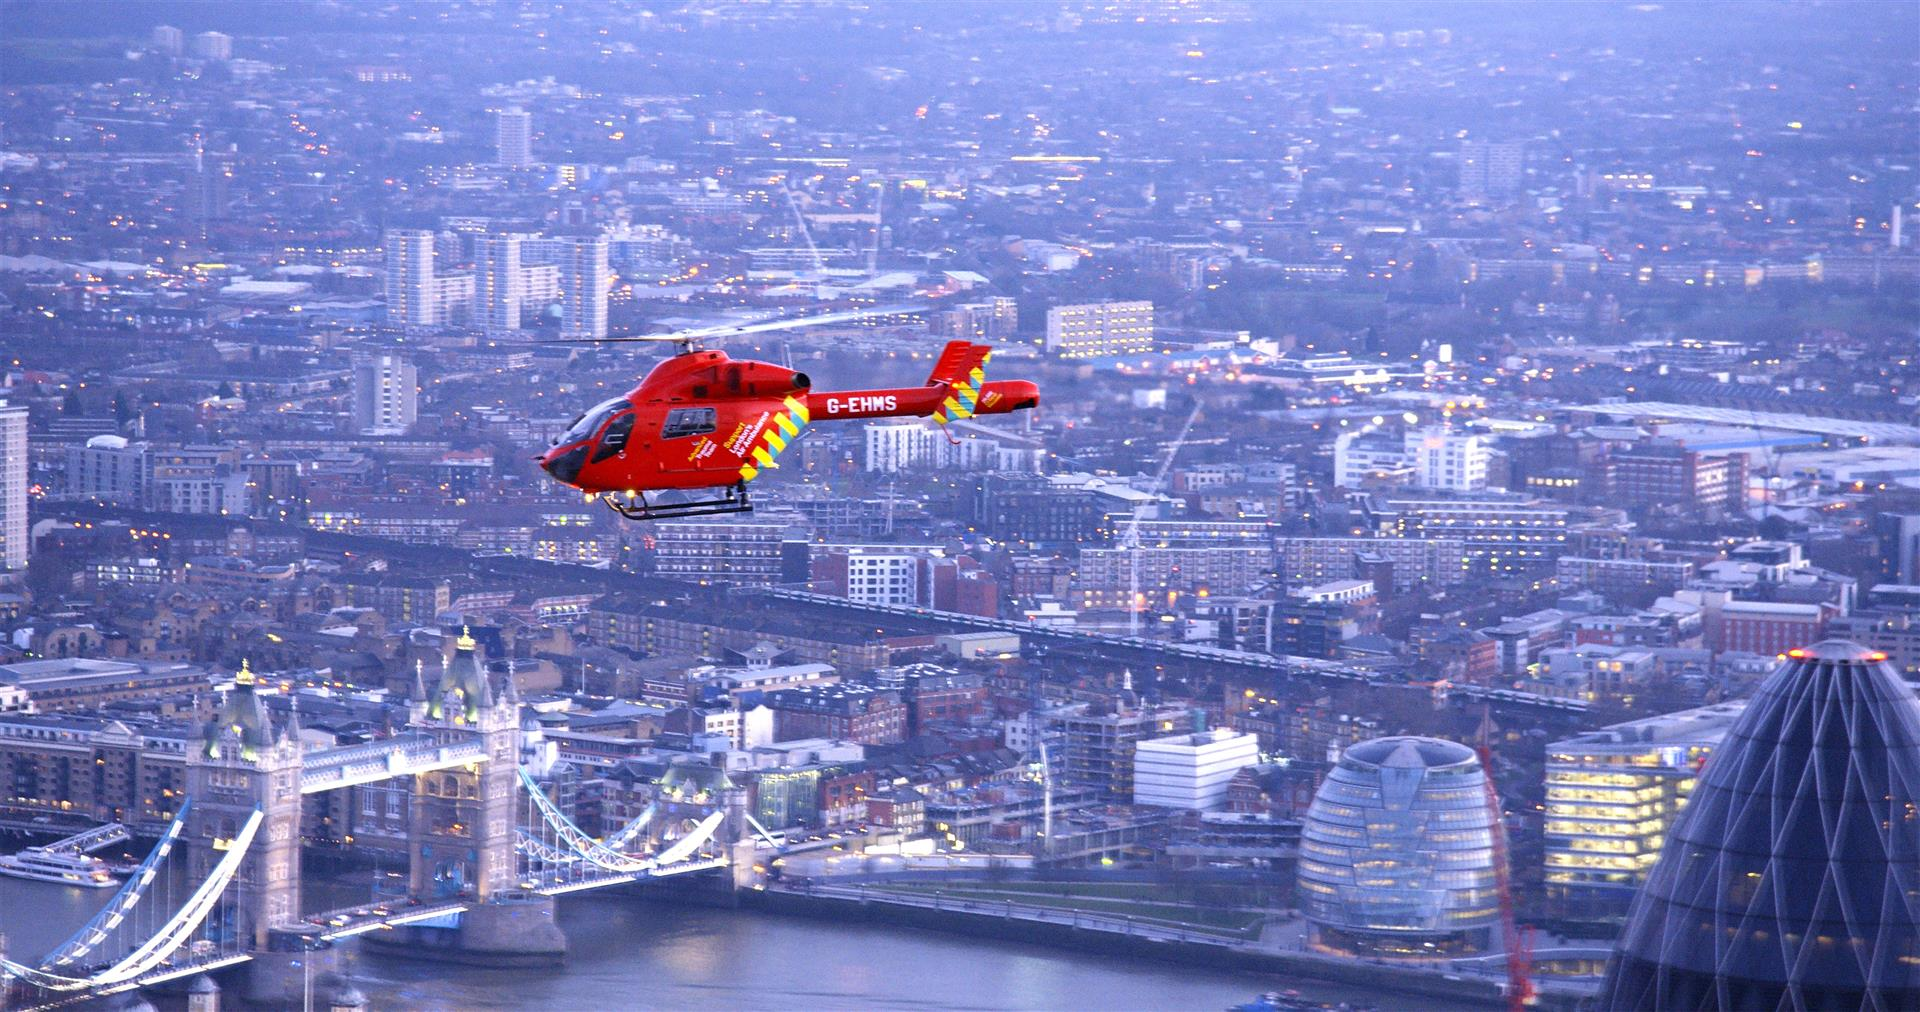 £100,000 SURPRISE FOR AIR AMBULANCE